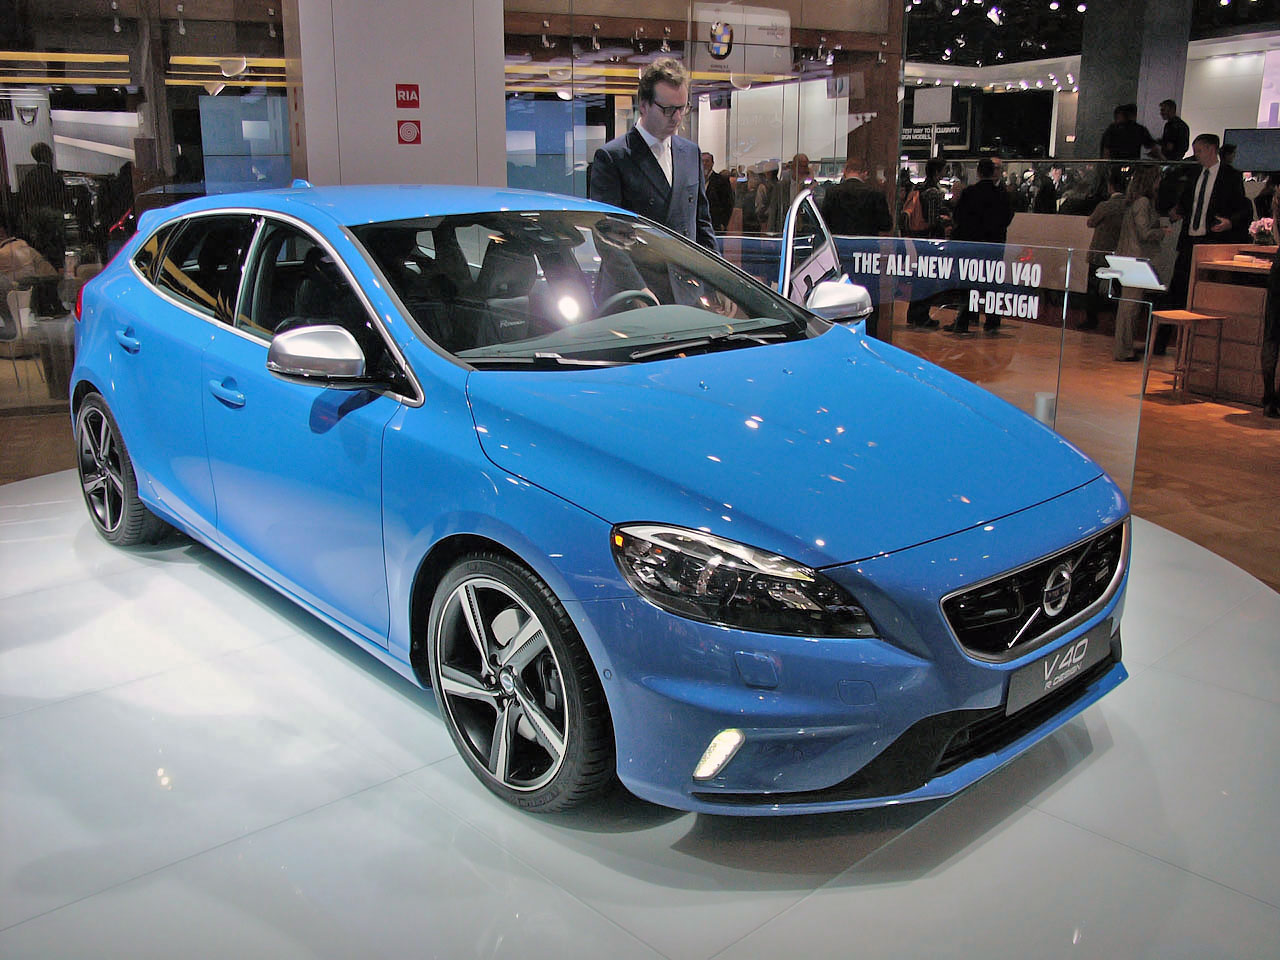 2013 volvo v40 r design paris 2012 photo gallery autoblog. Black Bedroom Furniture Sets. Home Design Ideas